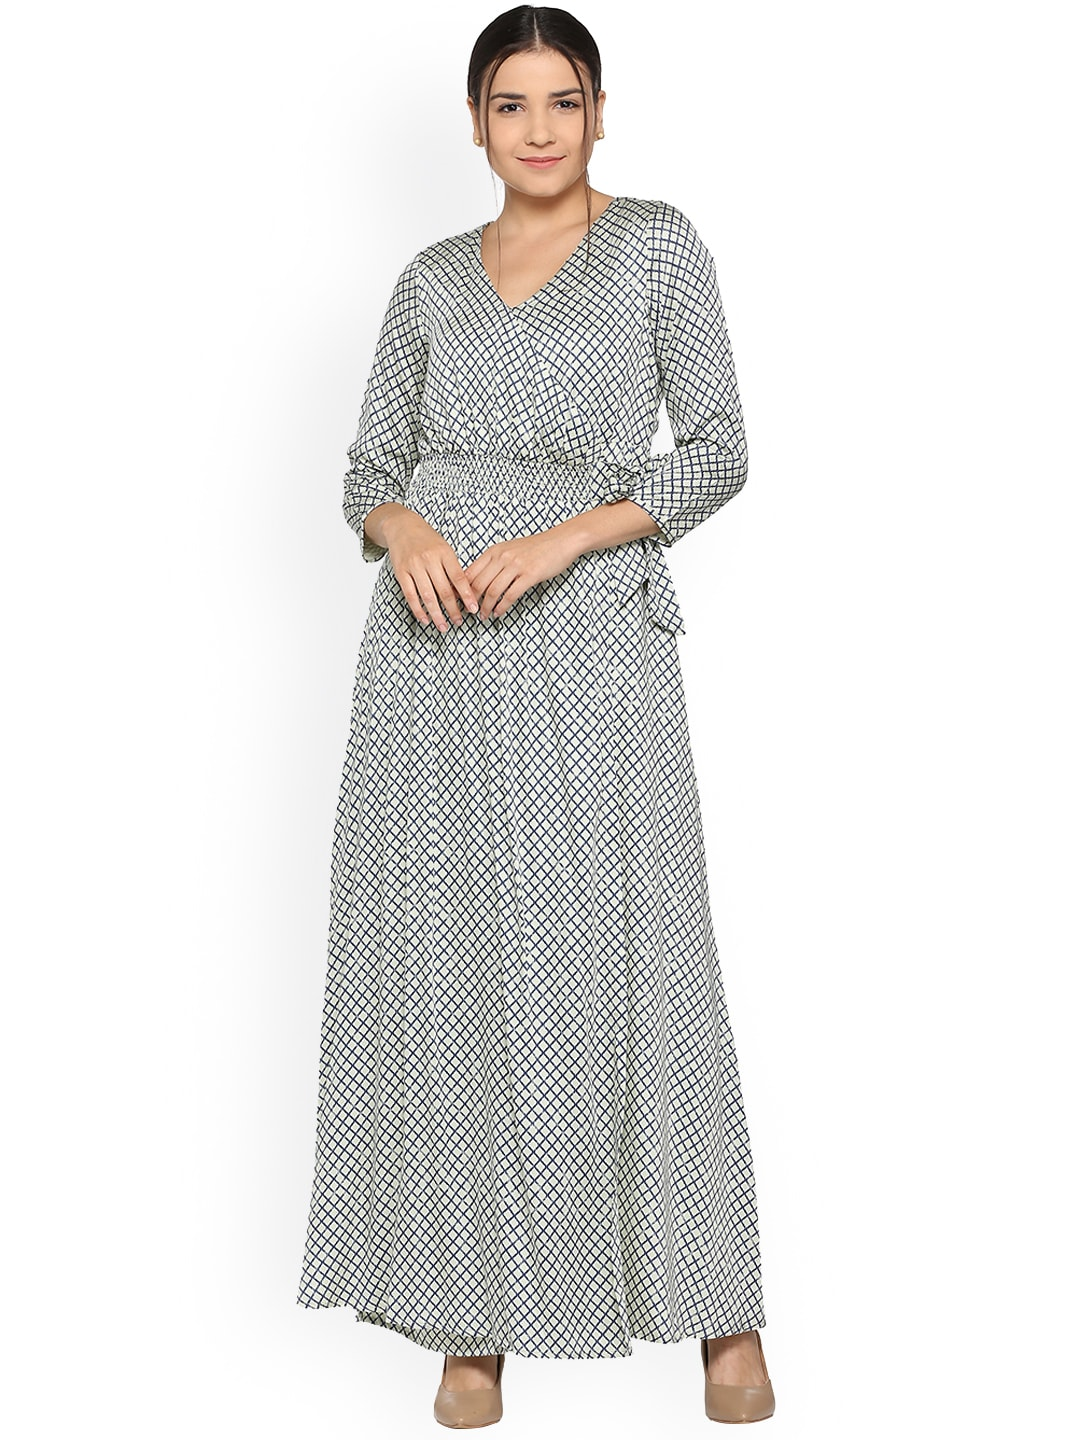 889a7a8d304 Women To Dresses - Buy Women To Dresses online in India